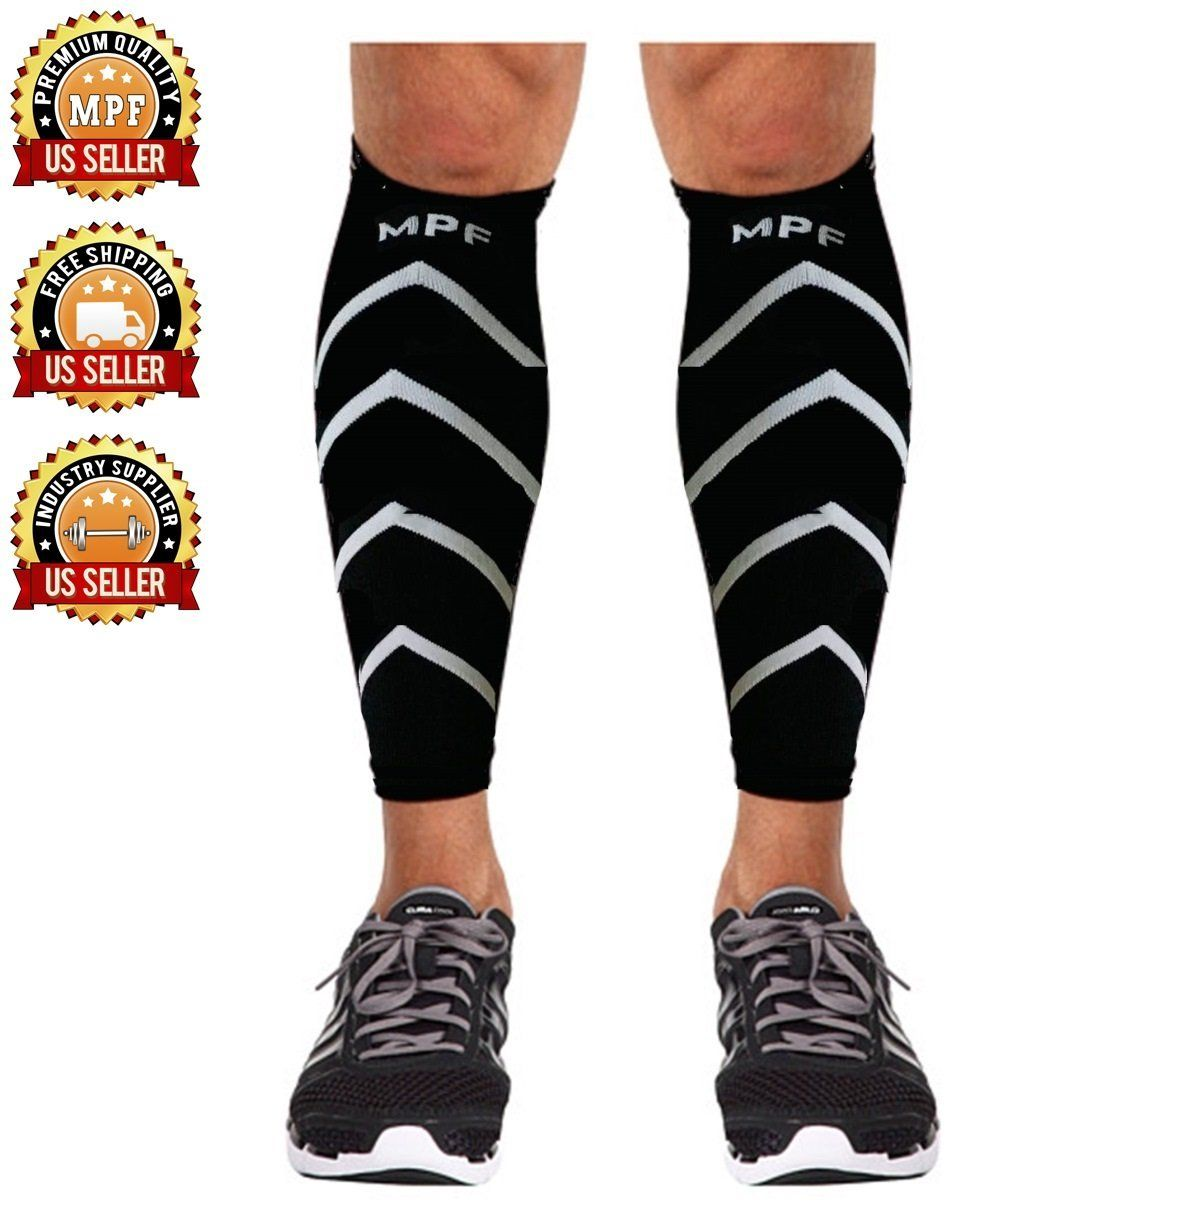 Mens piloxing gloves - Compression Calf Sleeves Men And Women Perfect For Workout Compression Leg Sleeves Alleviate Shin